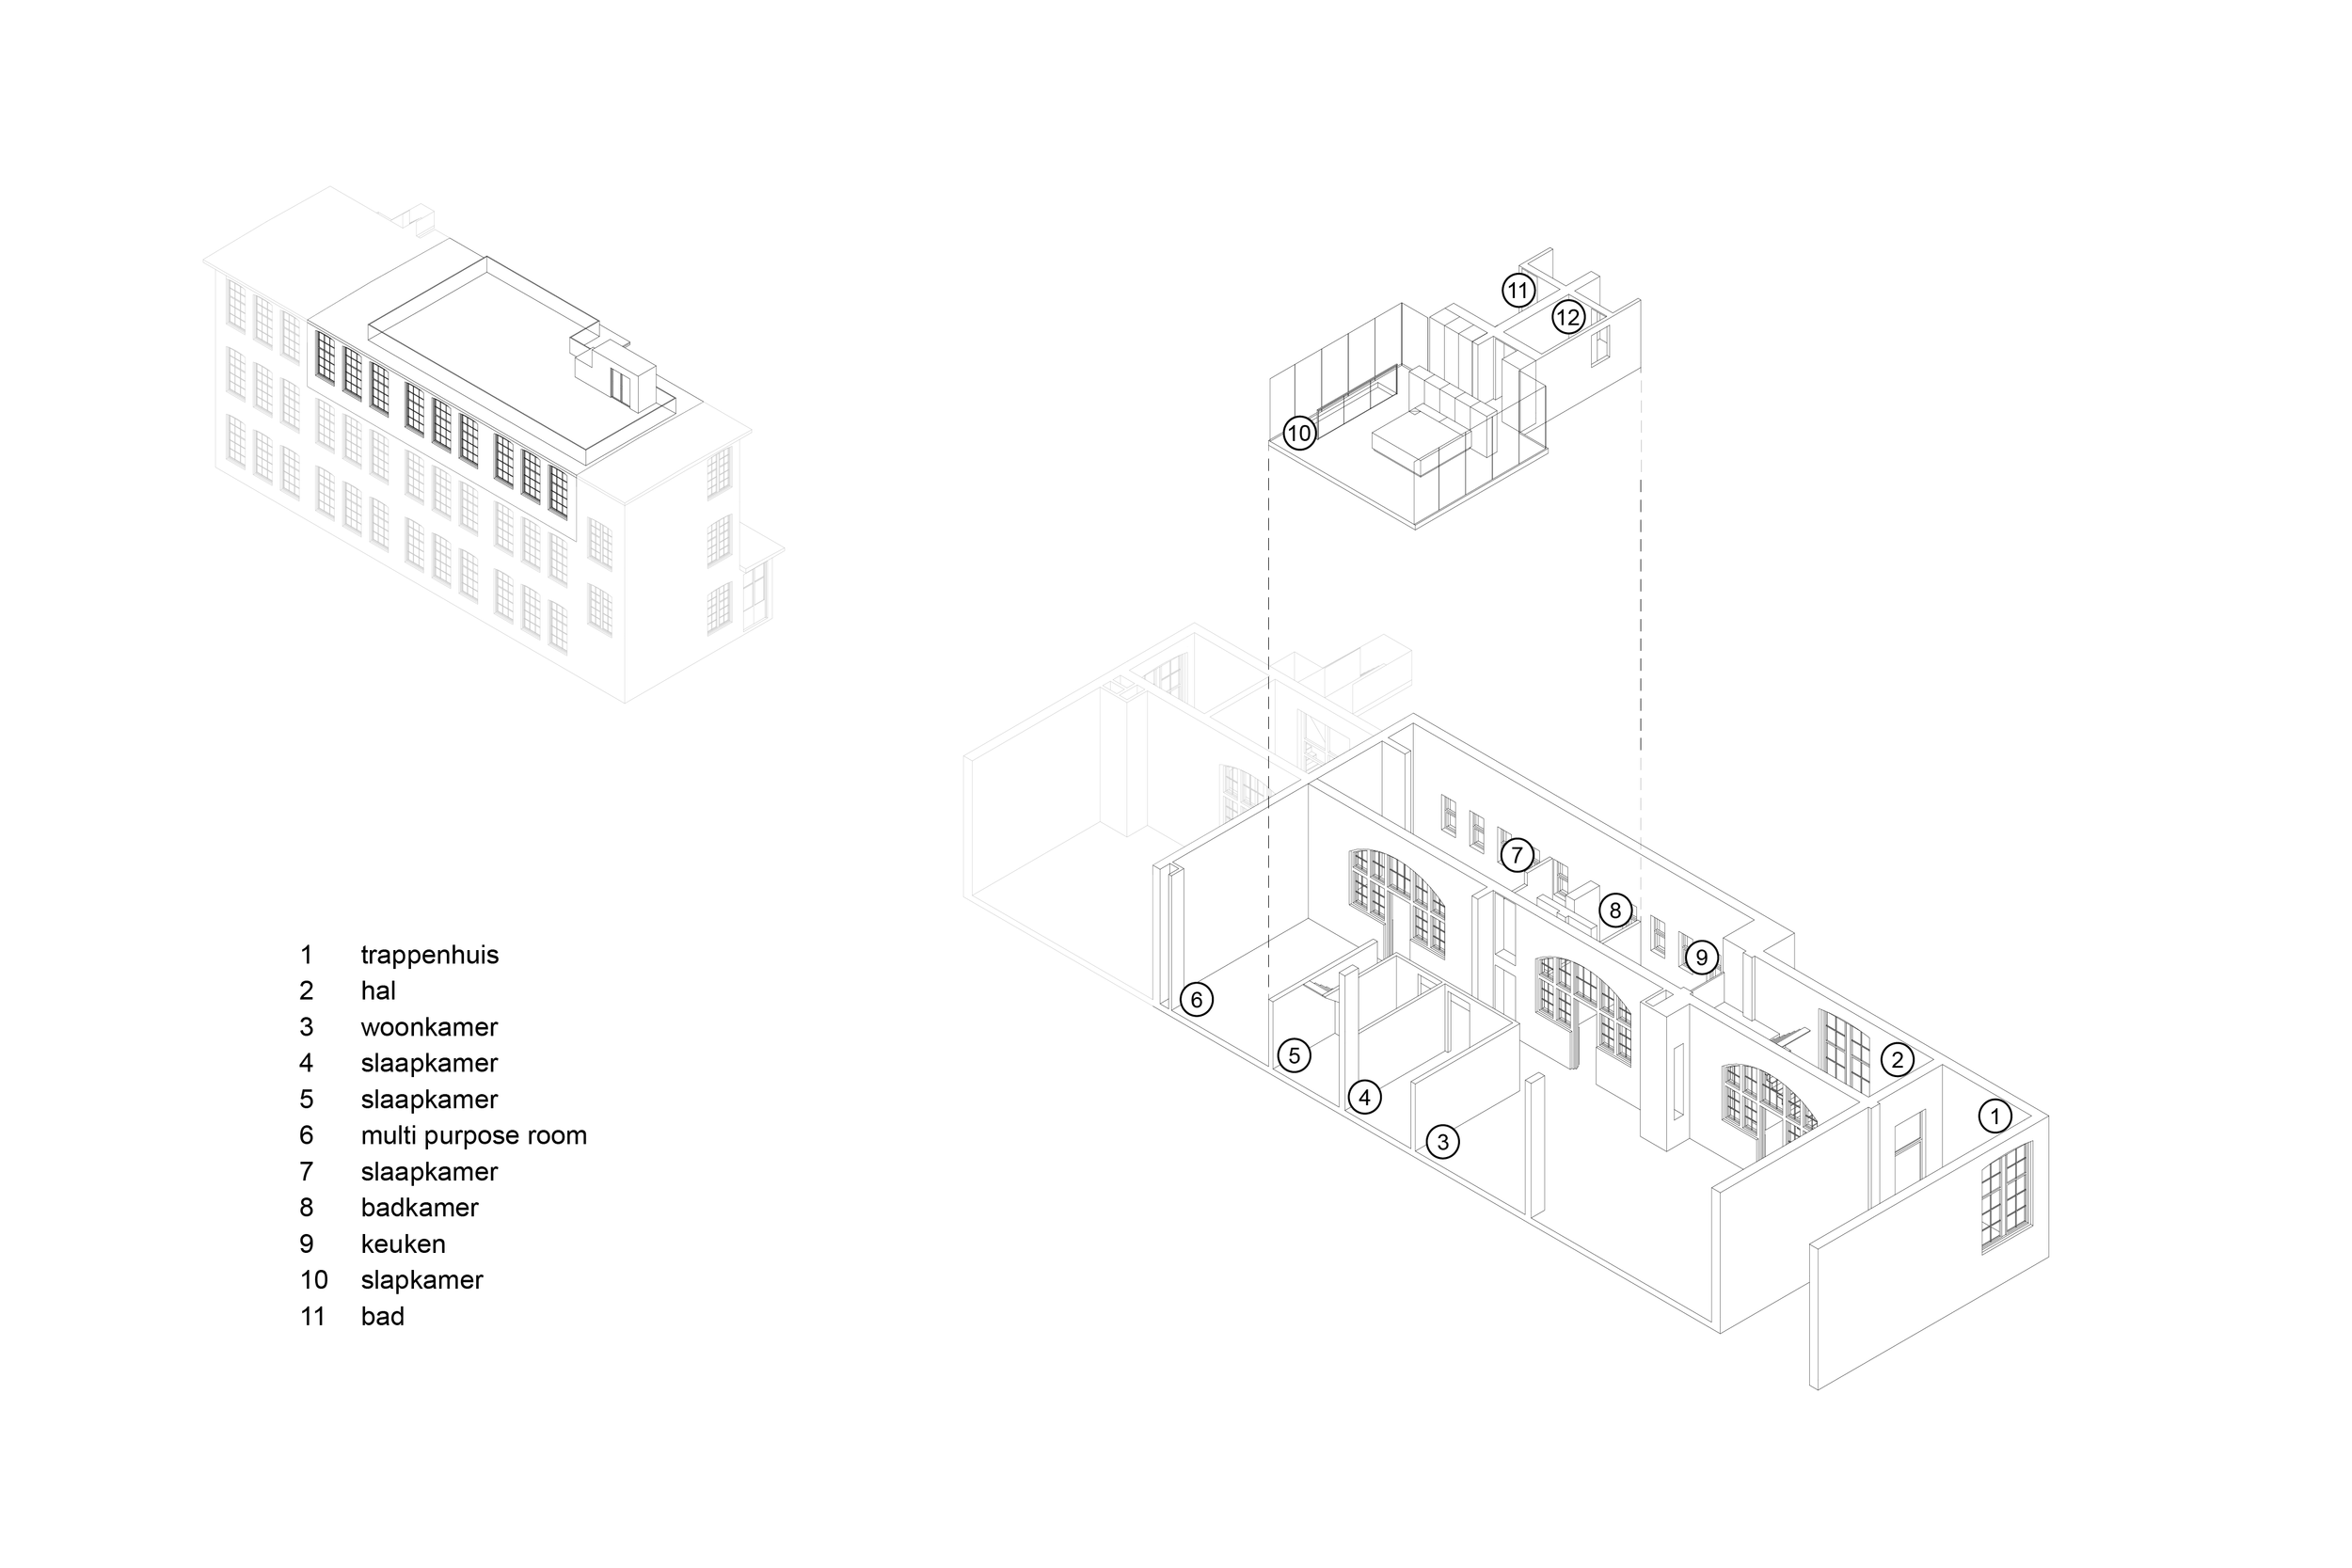 duyststraat_diagrams-02.png